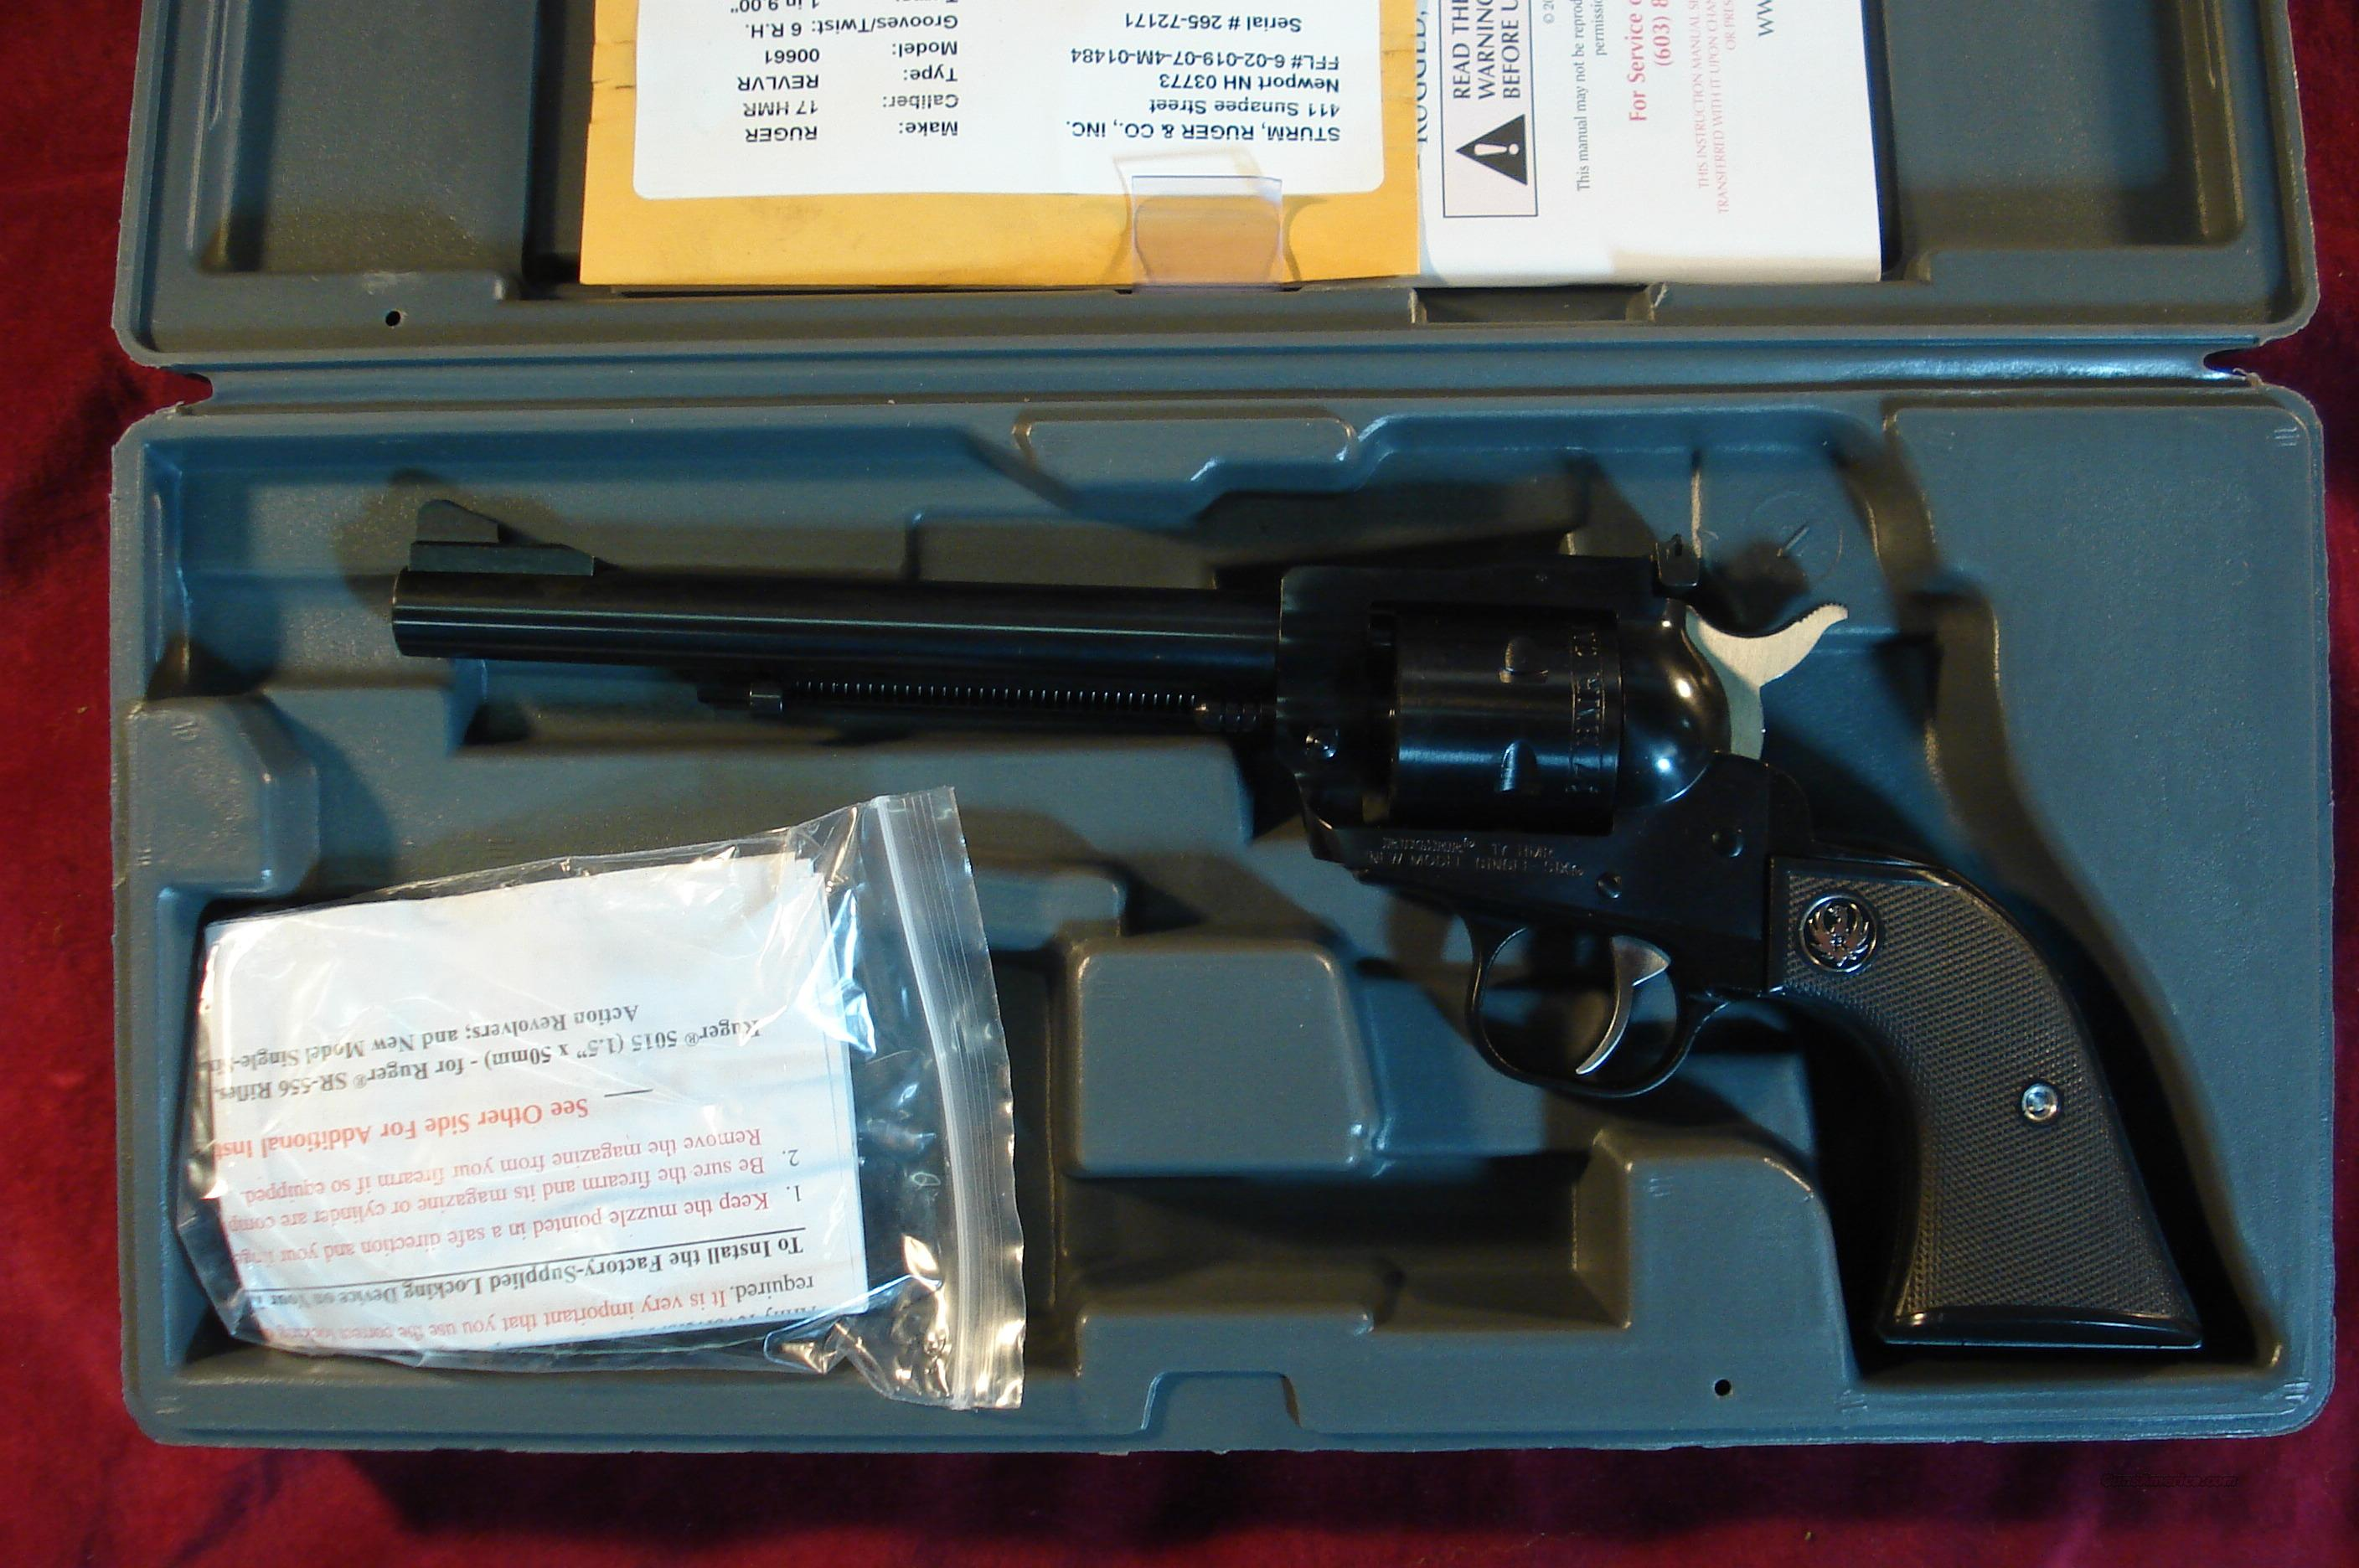 "RUGER .17HMR SINGLE-SIX BLUE 6.5"" NEW (NR-6-17)  Guns > Pistols > Ruger Single Action Revolvers > Single Six Type"